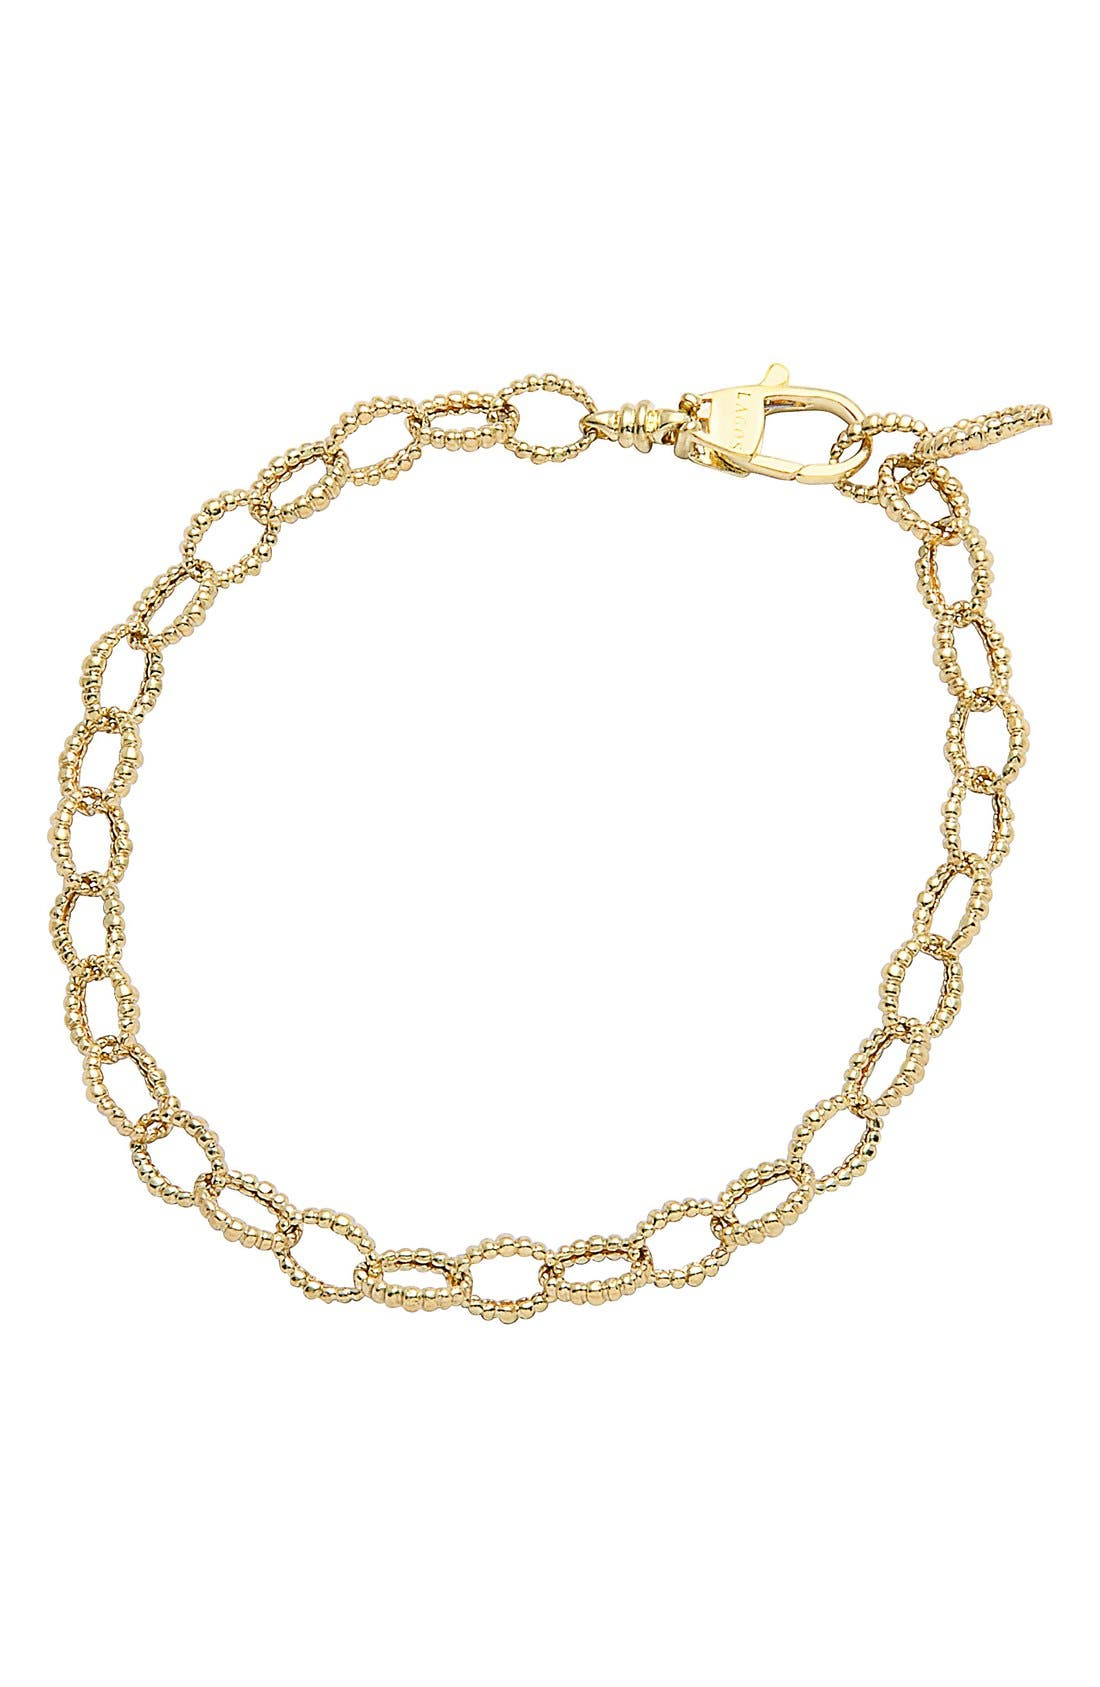 Caviar Link Bracelet,                             Main thumbnail 1, color,                             GOLD